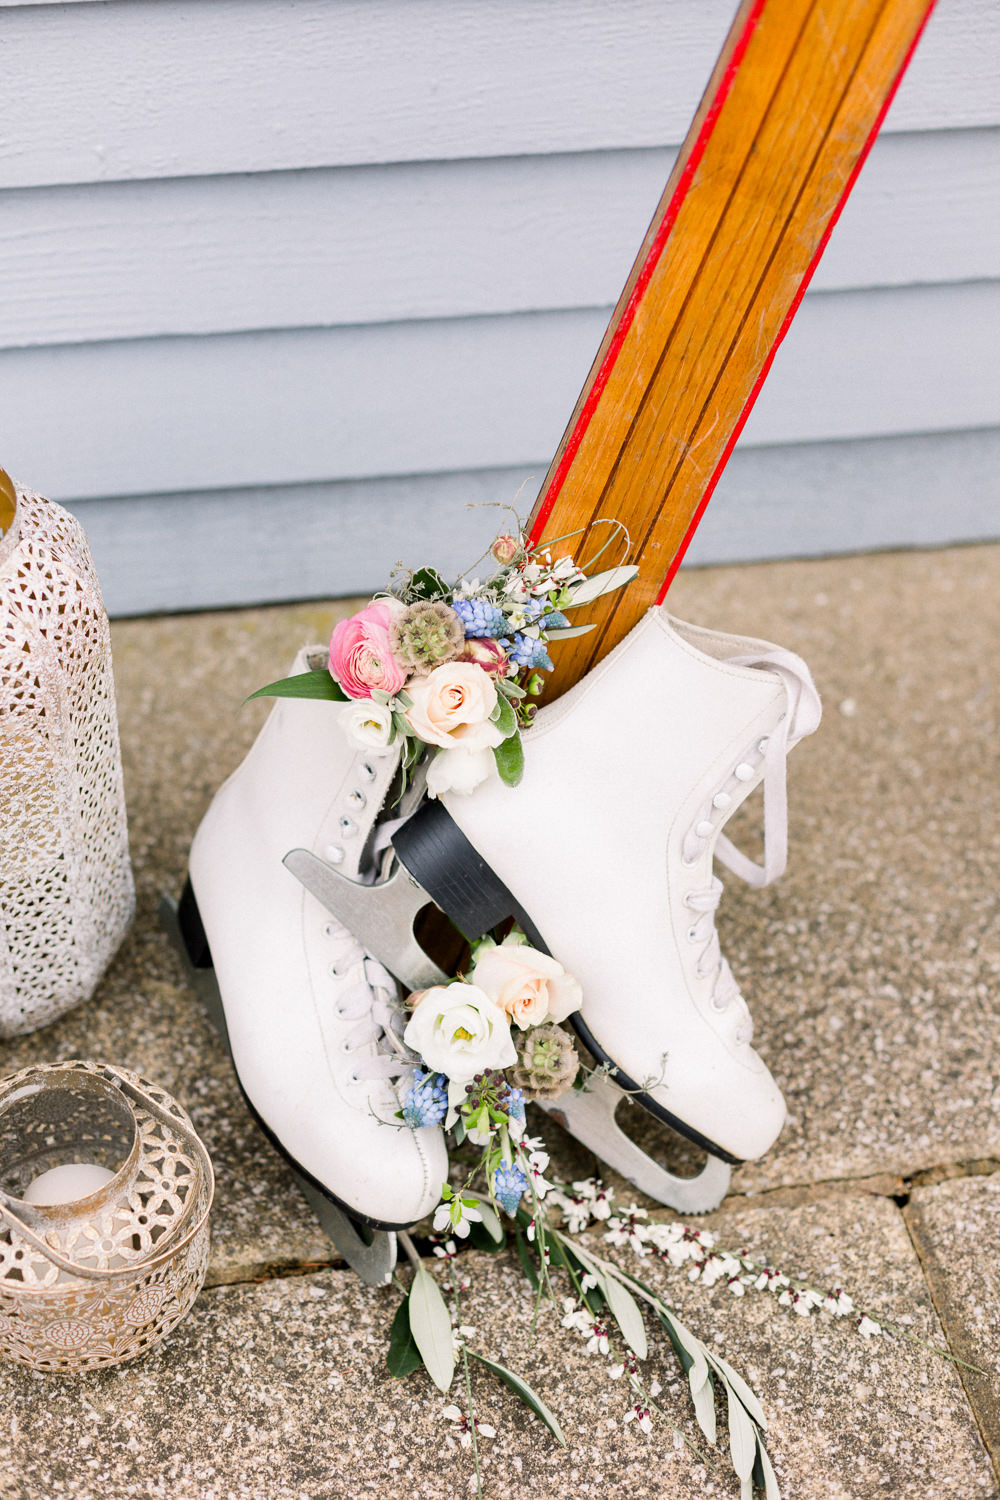 Ice Skates Flowers Decor Winter Blue Barn Wedding Ideas Joanna Briggs Photography